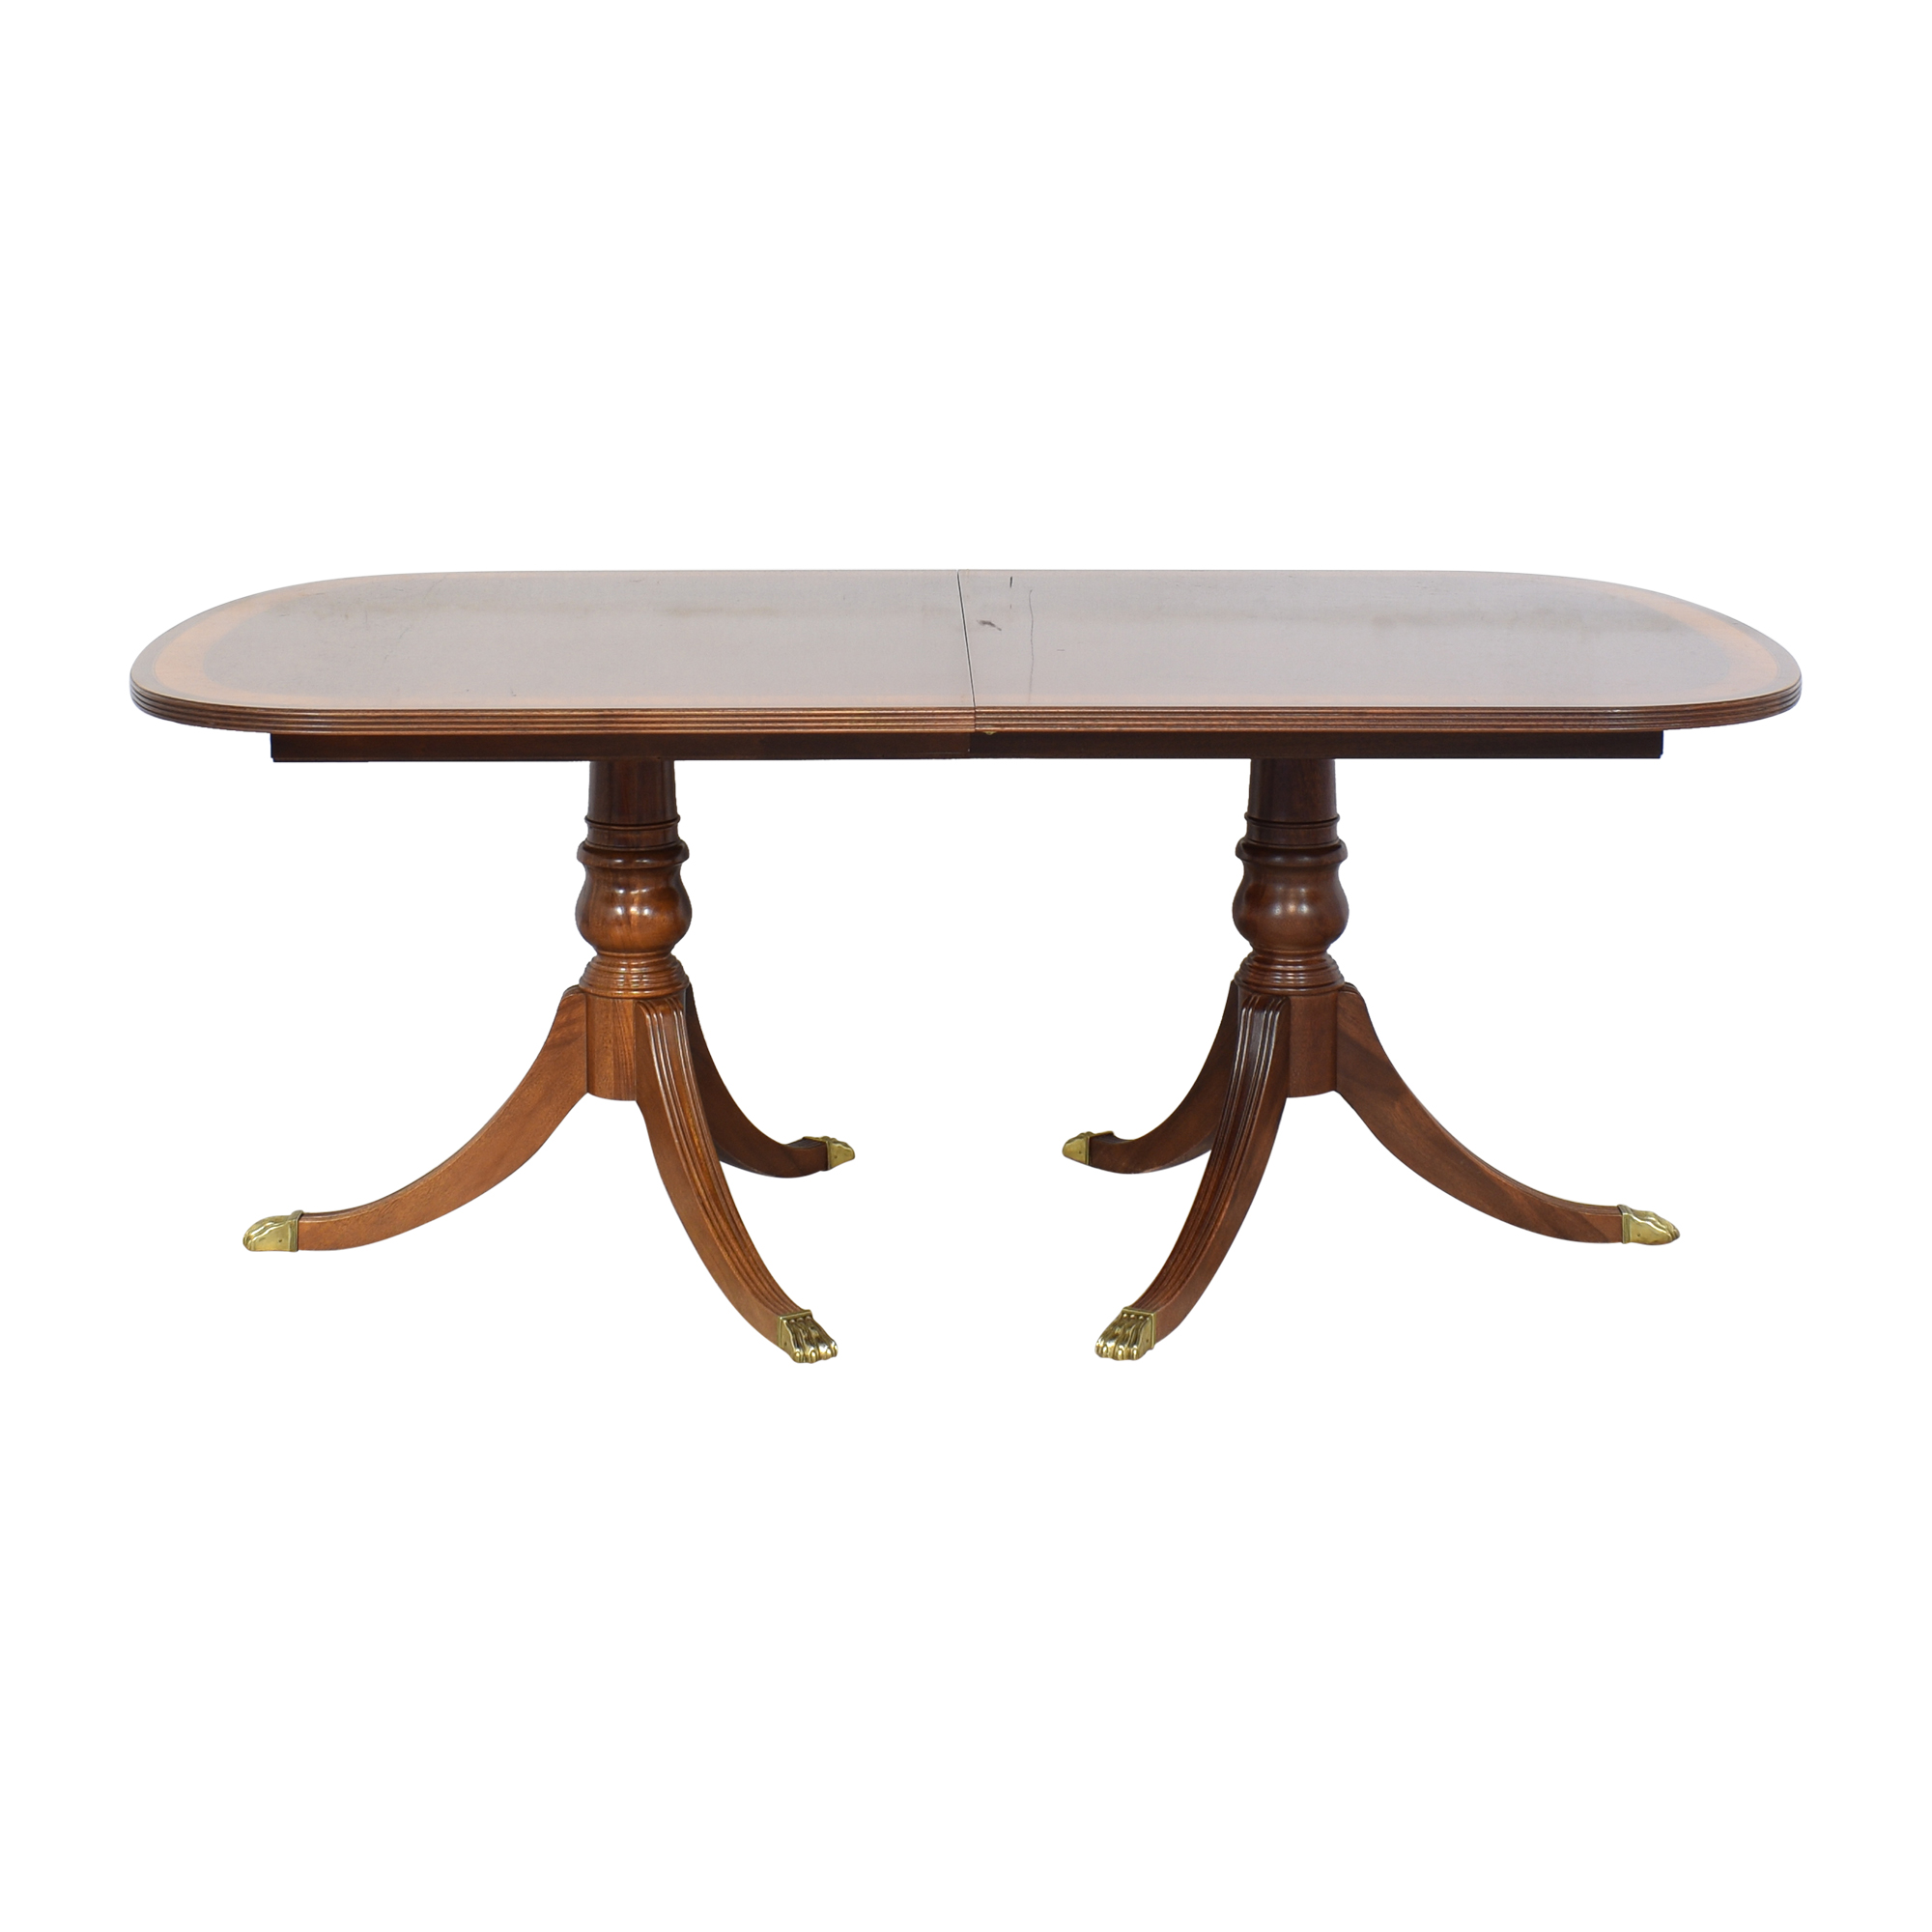 Ethan Allen Ethan Allen Abbott Dining Table dimensions